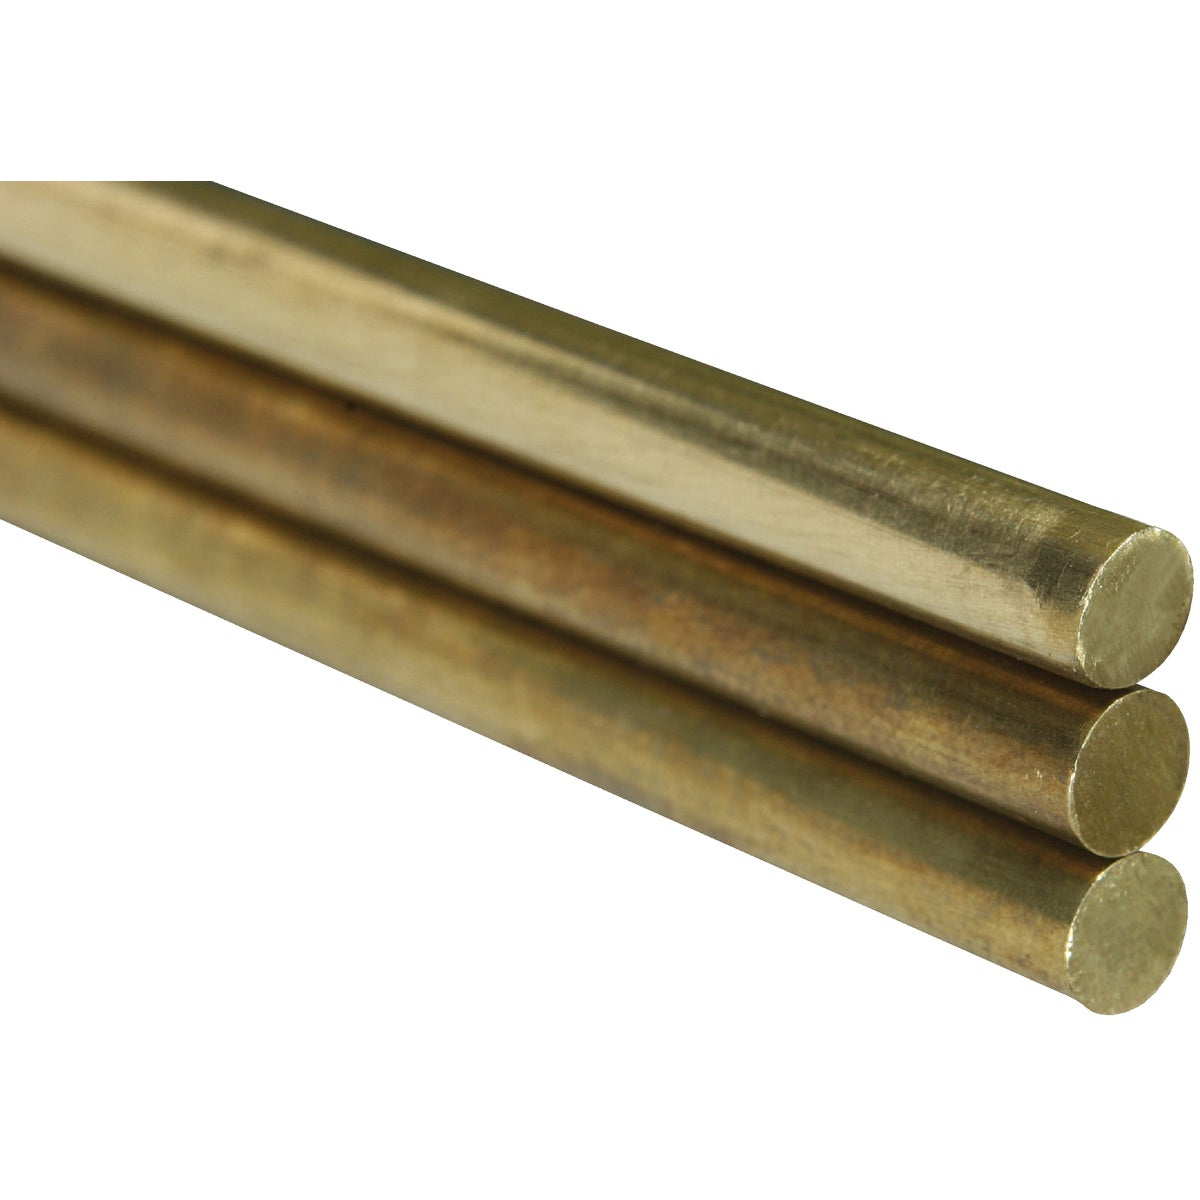 5/32X12 SOLID BRASS ROD - 8165 by K&s Precision Metals